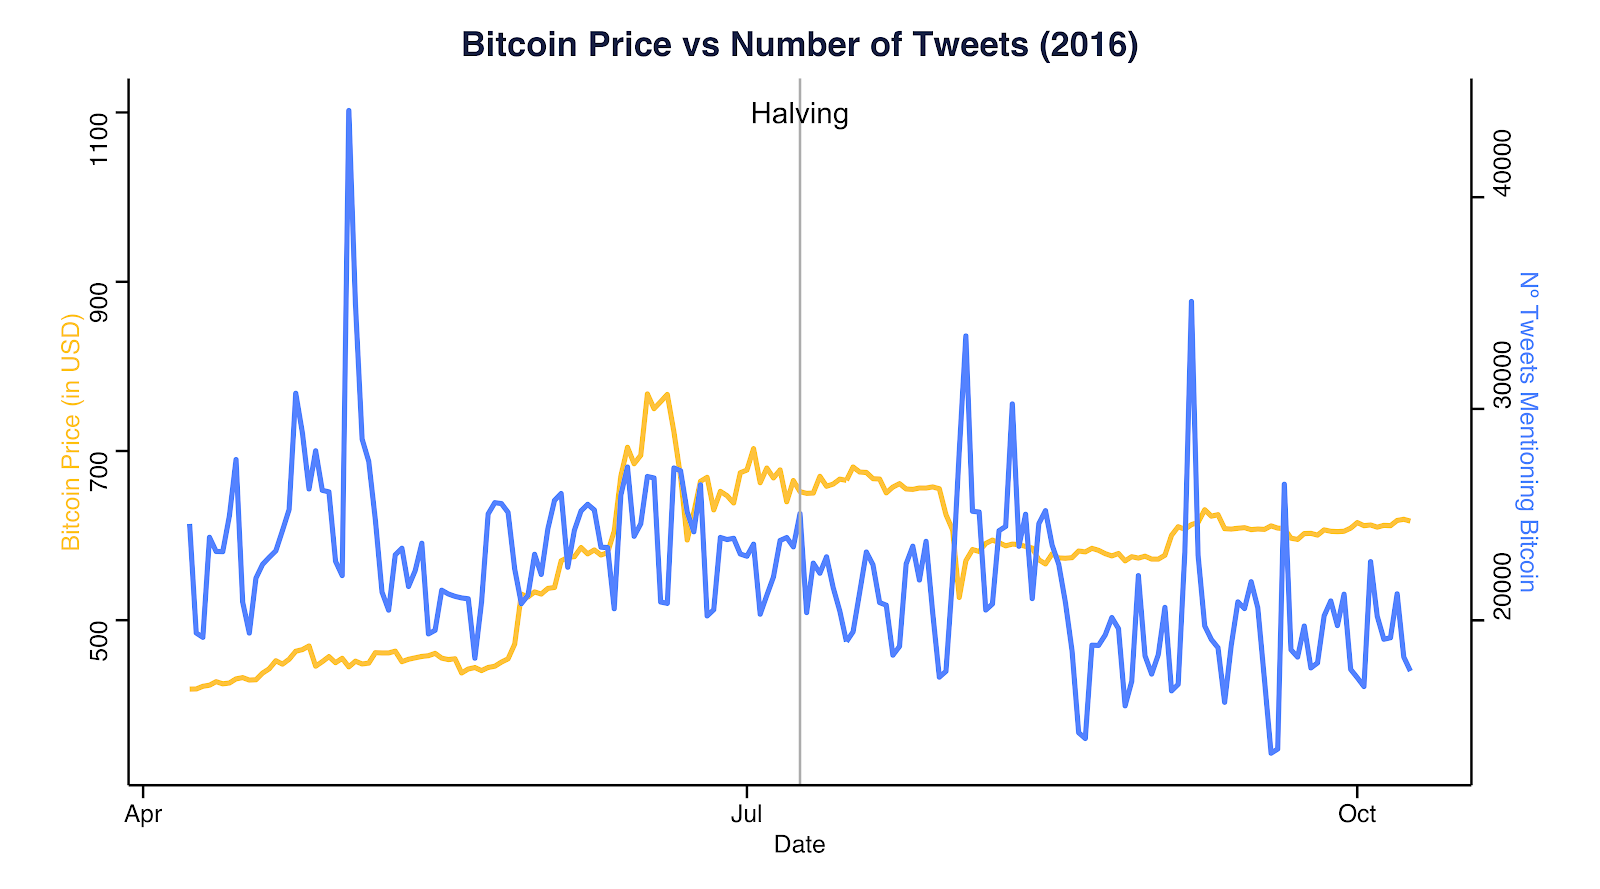 BTC price vs number of tweets in 2016. Source: Coinmetrics.io and Bitinfocharts